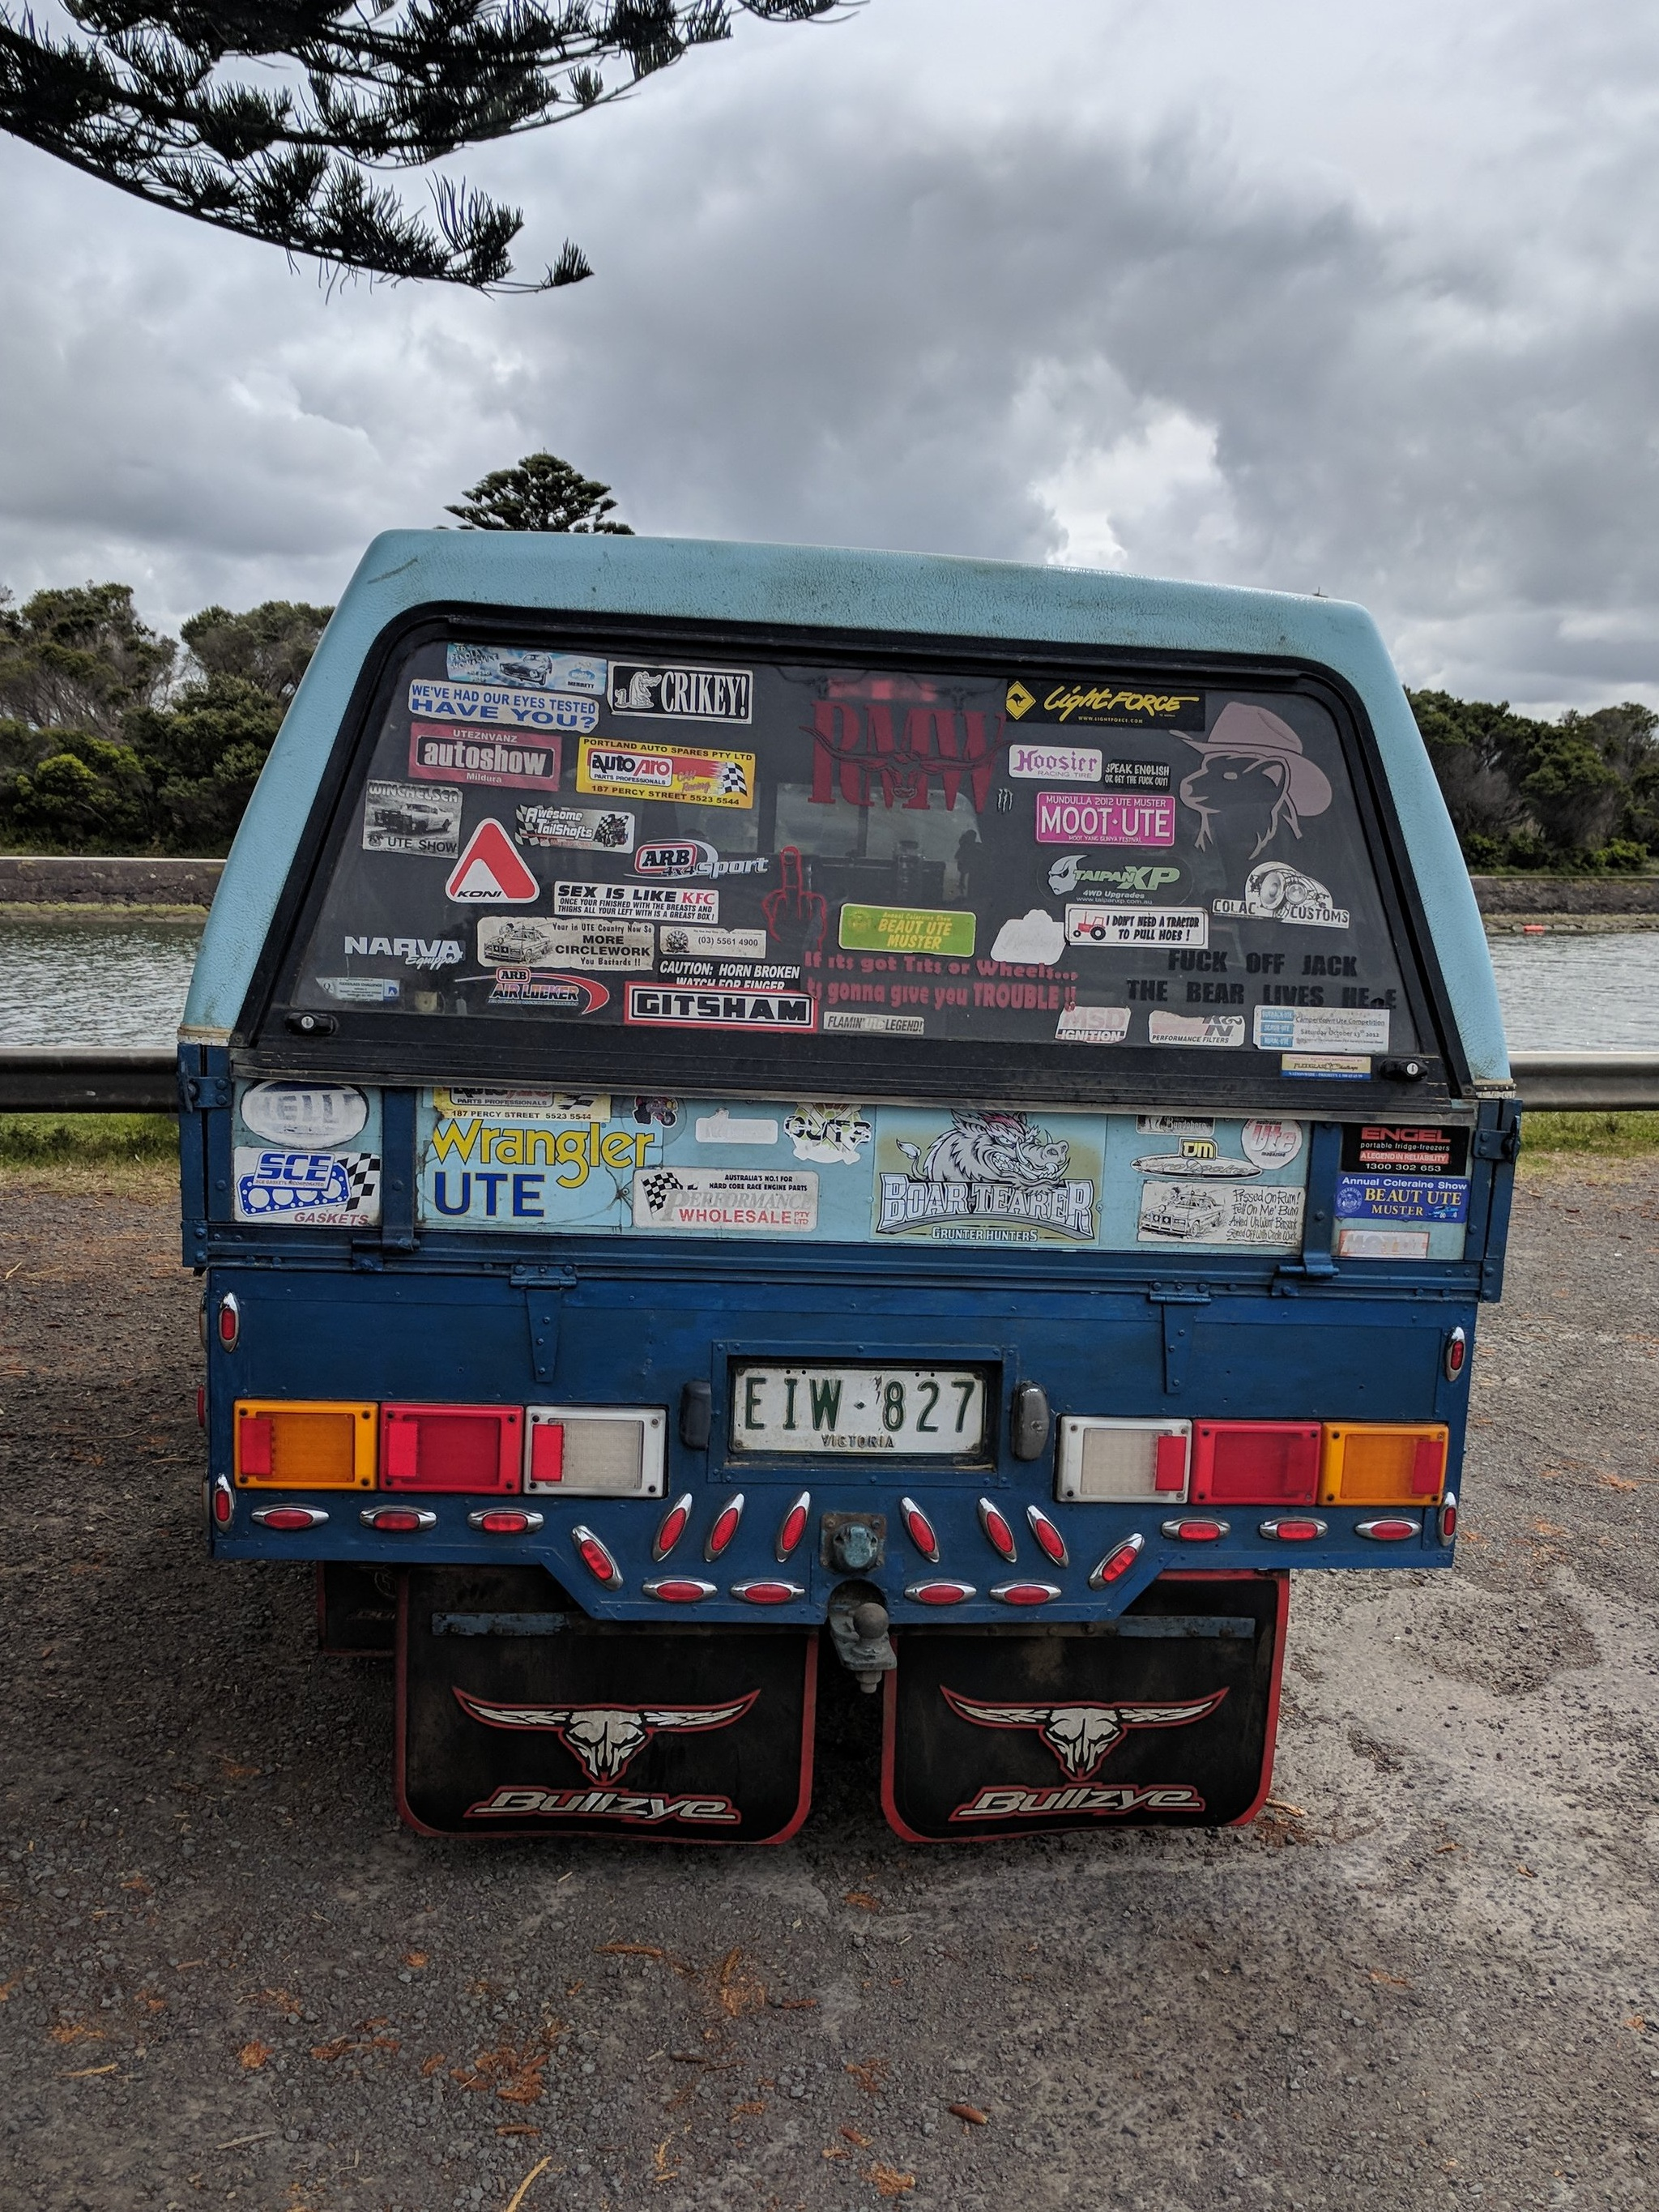 IN AUSTRALIA 51% OF CARS HAVE STICKERS ON THEM. YES THAT'S RIGHT - YOU'RE EITHER A STICKER LOVER OR A STICKER HATER! -